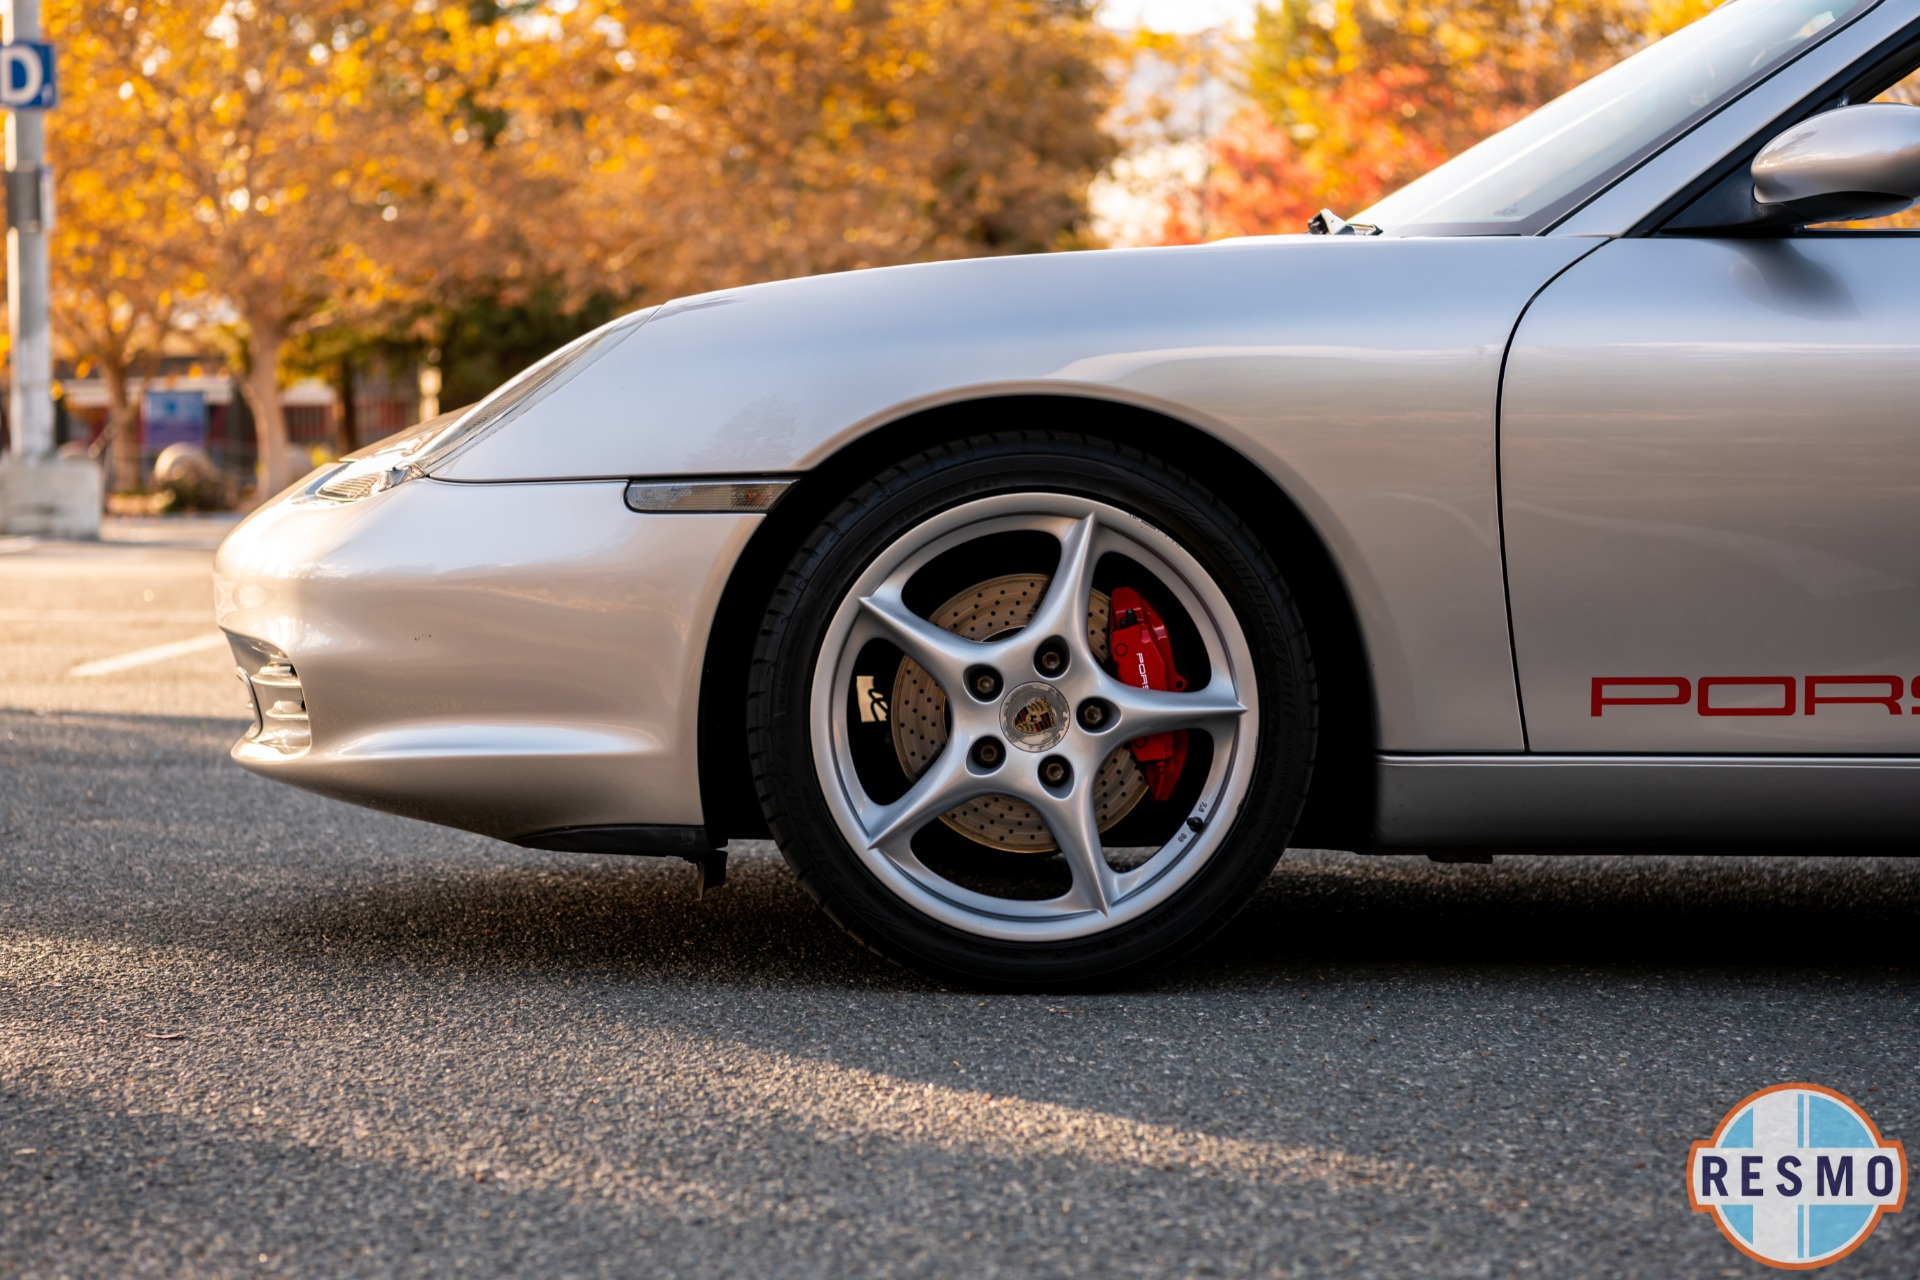 Used 2003 Porsche Boxster S Used 2003 Porsche Boxster S for sale Sold at Response Motors in Mountain View CA 11